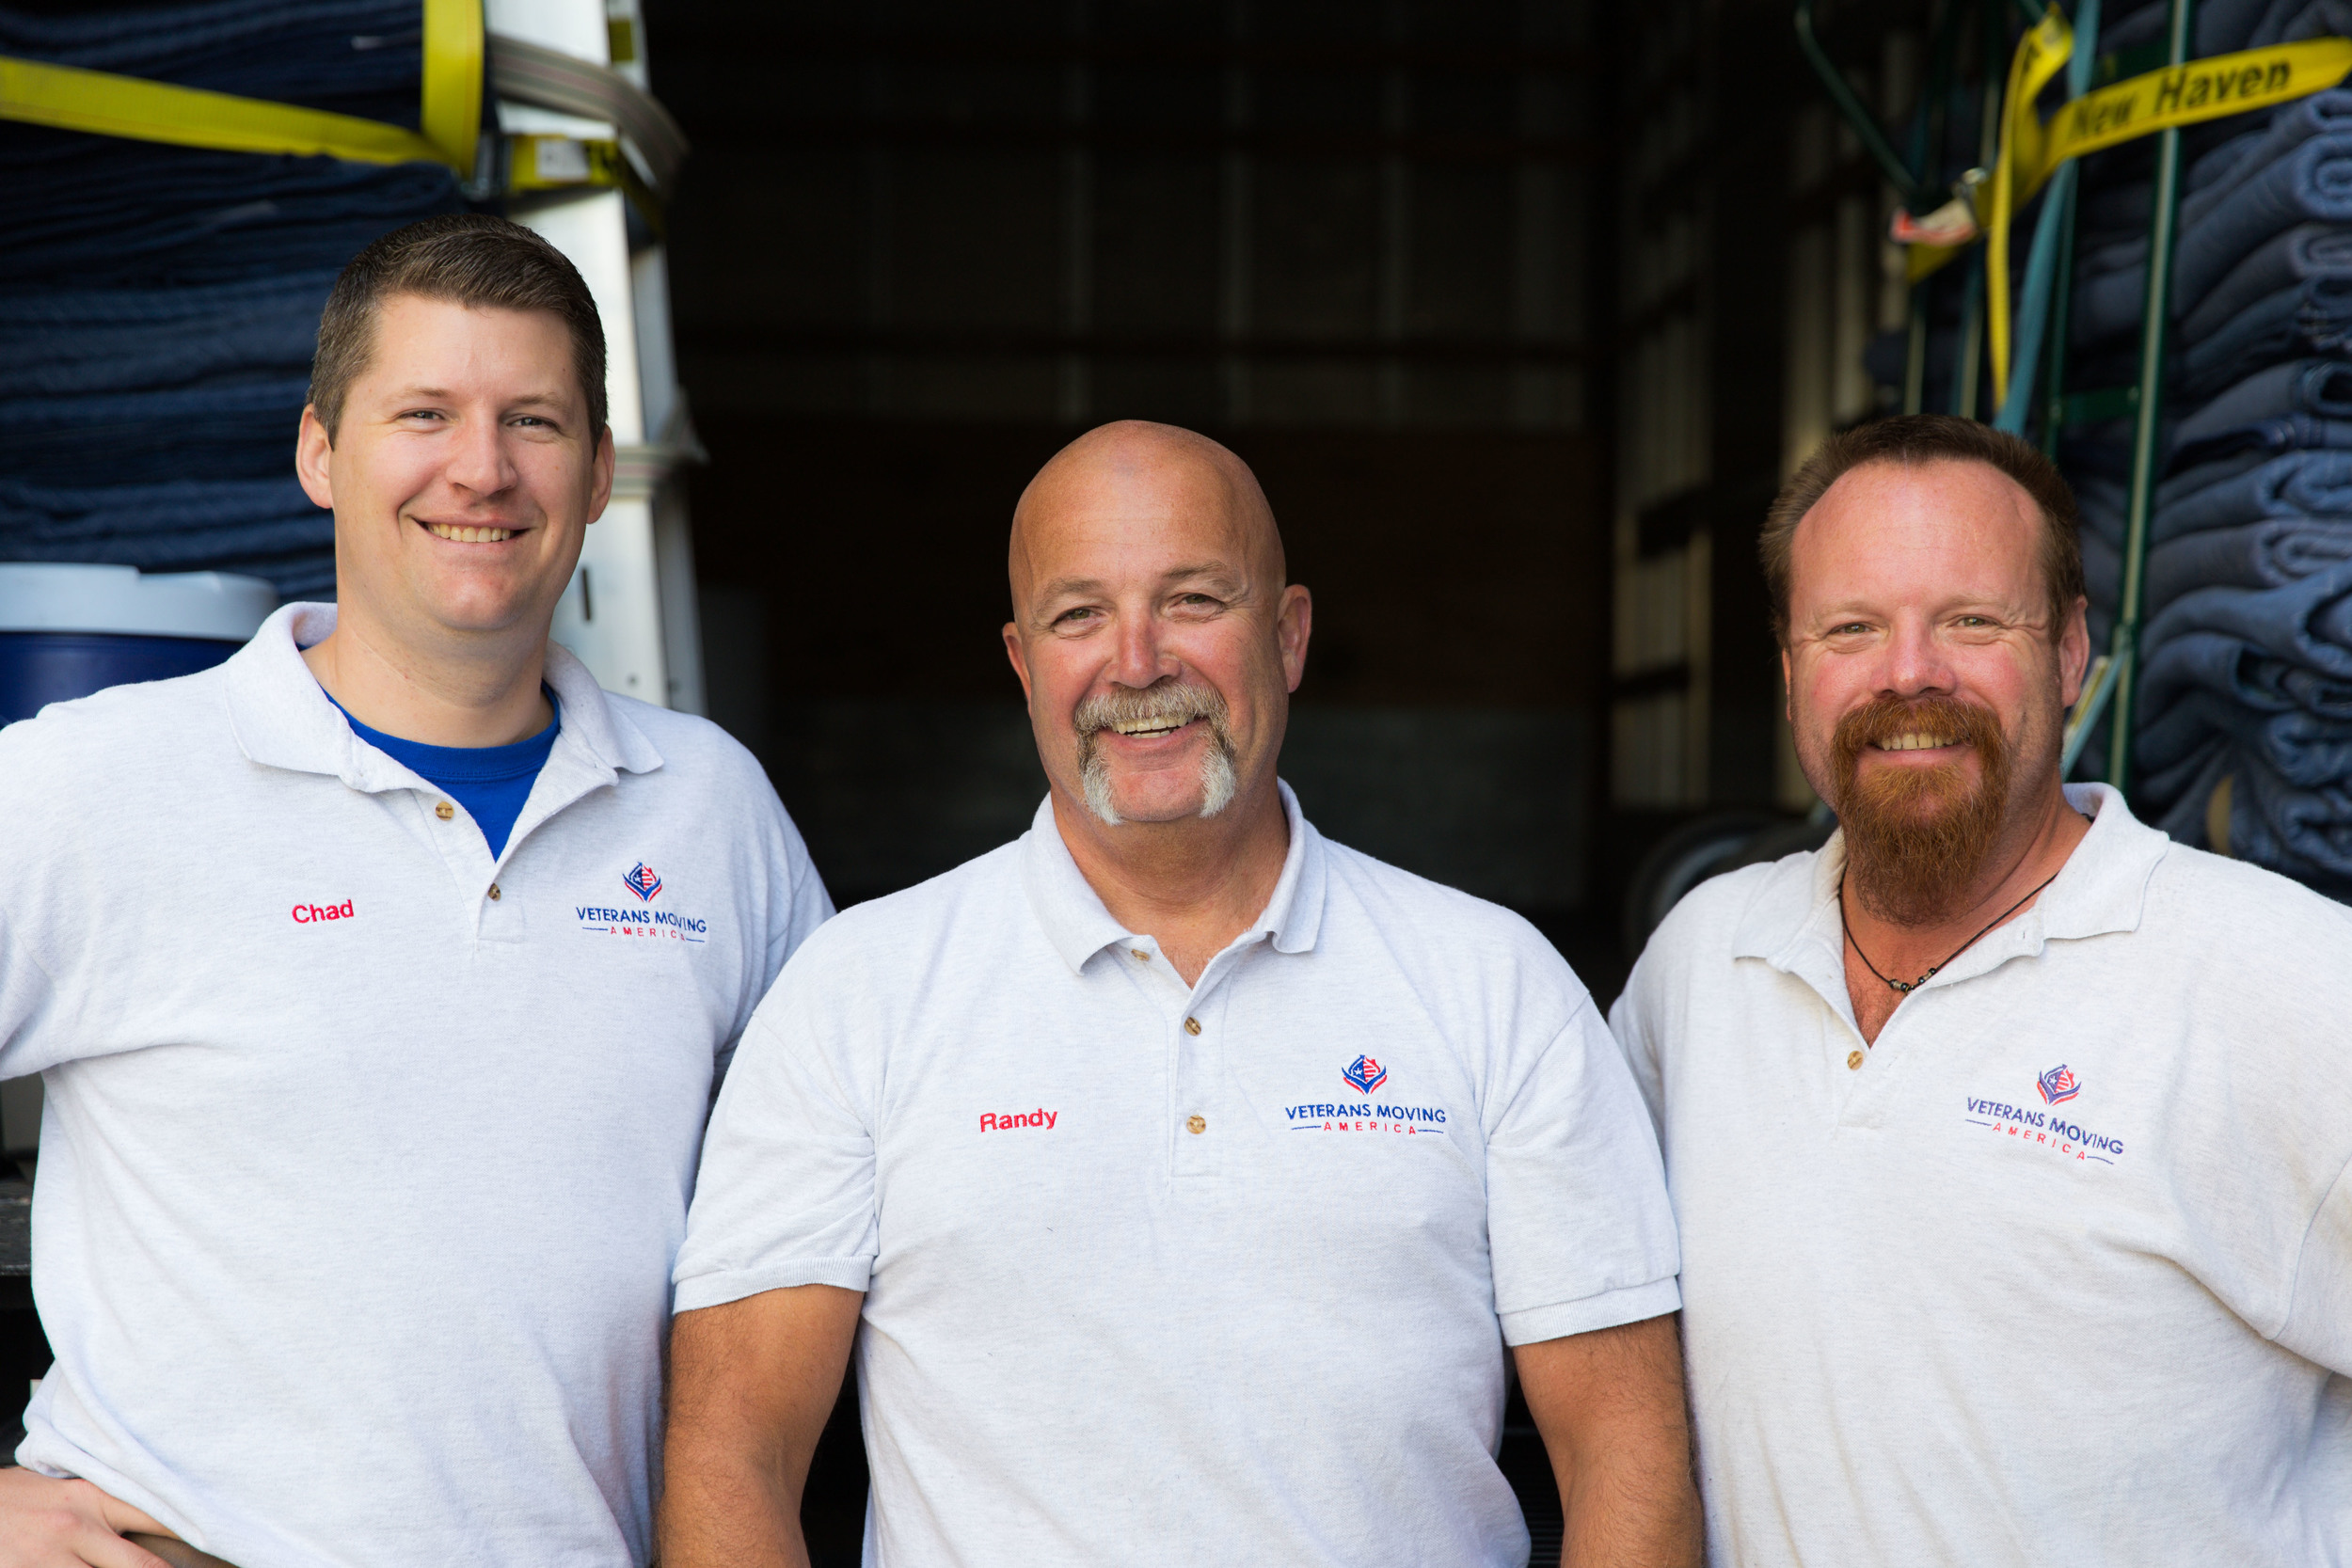 Veteran Movers with Veterans Moving America